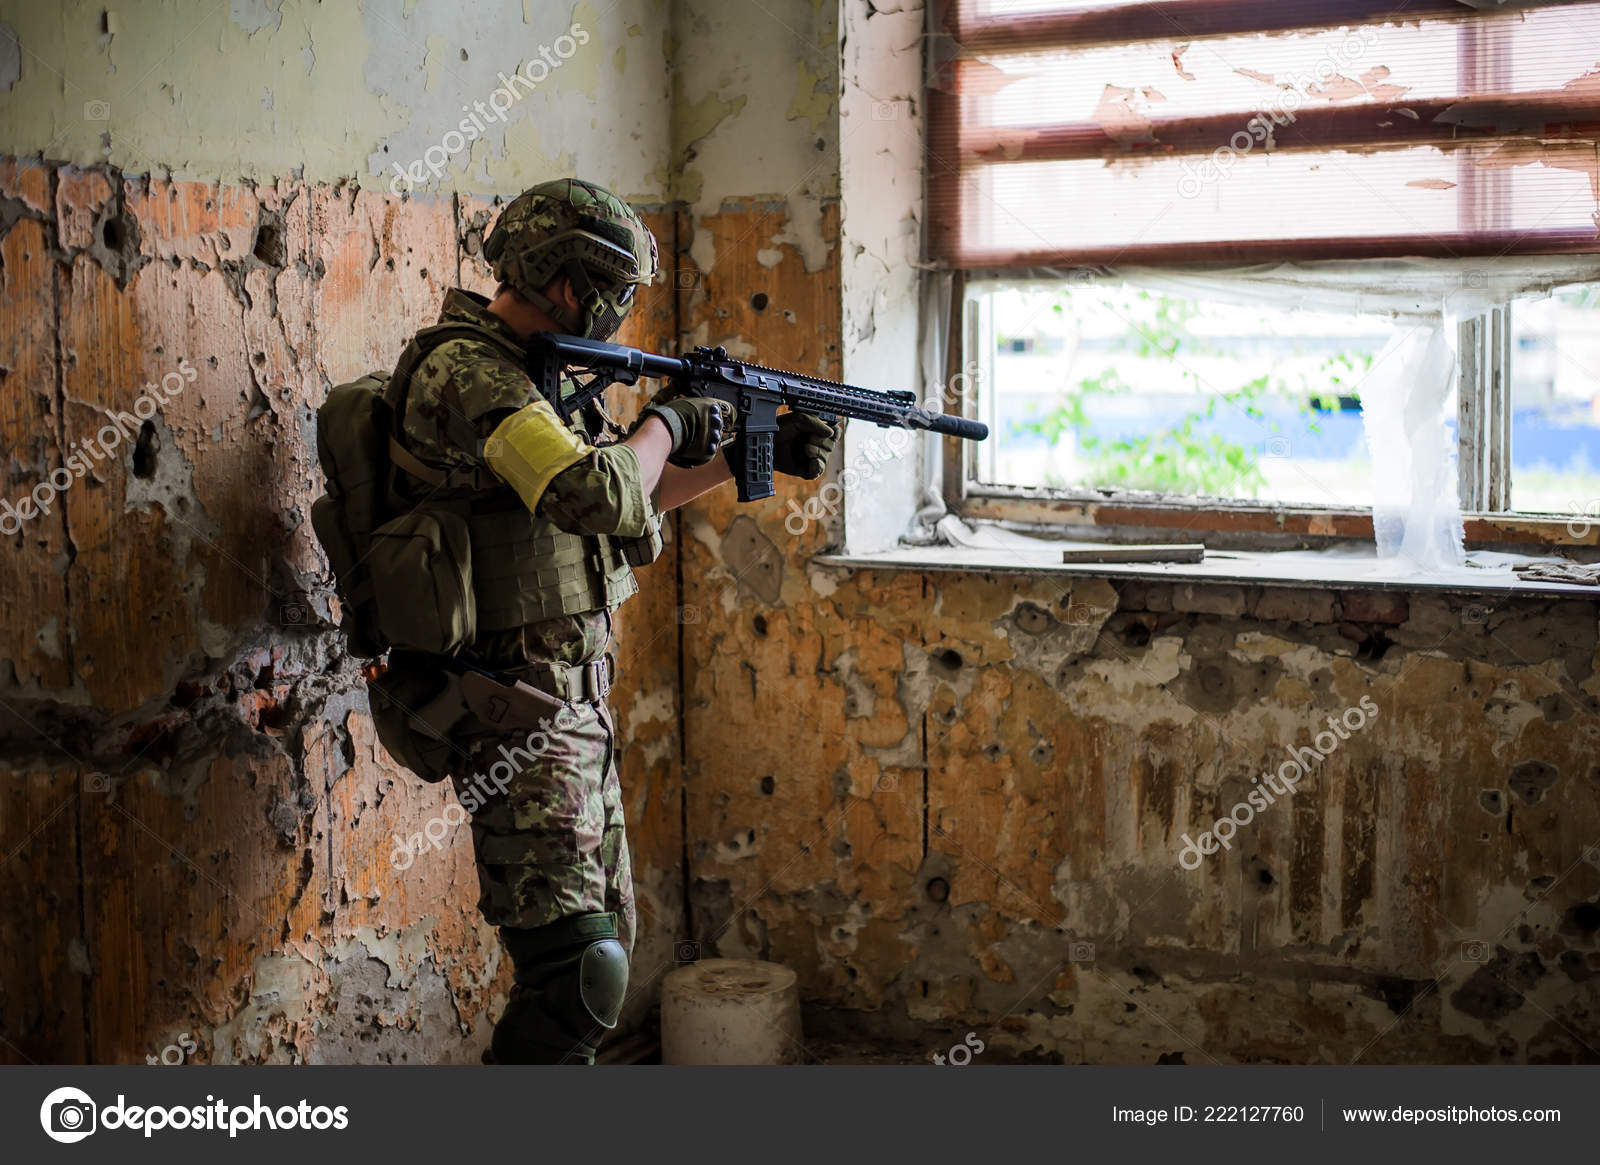 military man sniper automatic rifle window old abandoned building